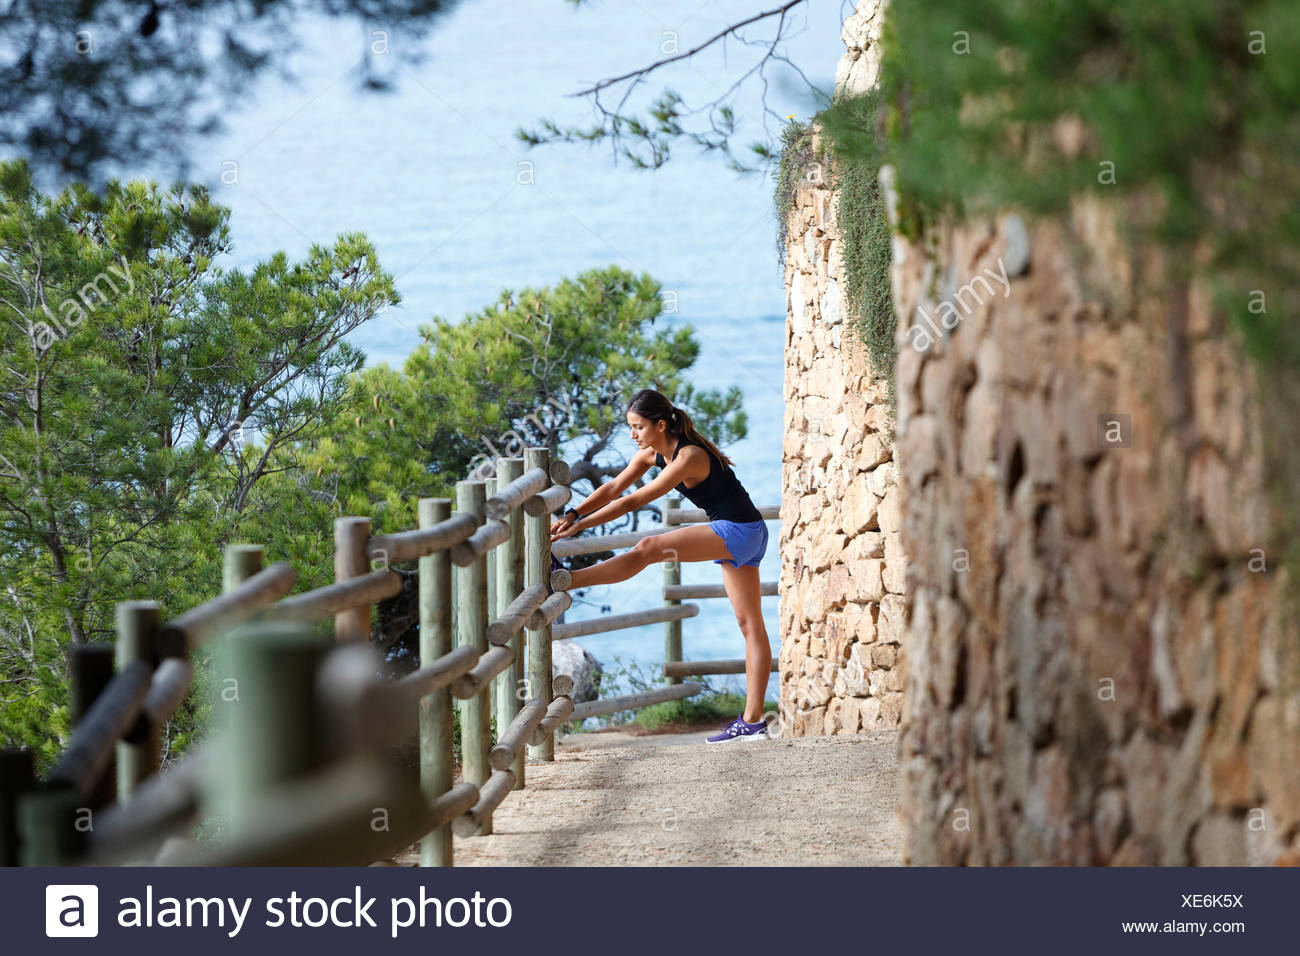 Runner stretching on dirt path - Stock Image